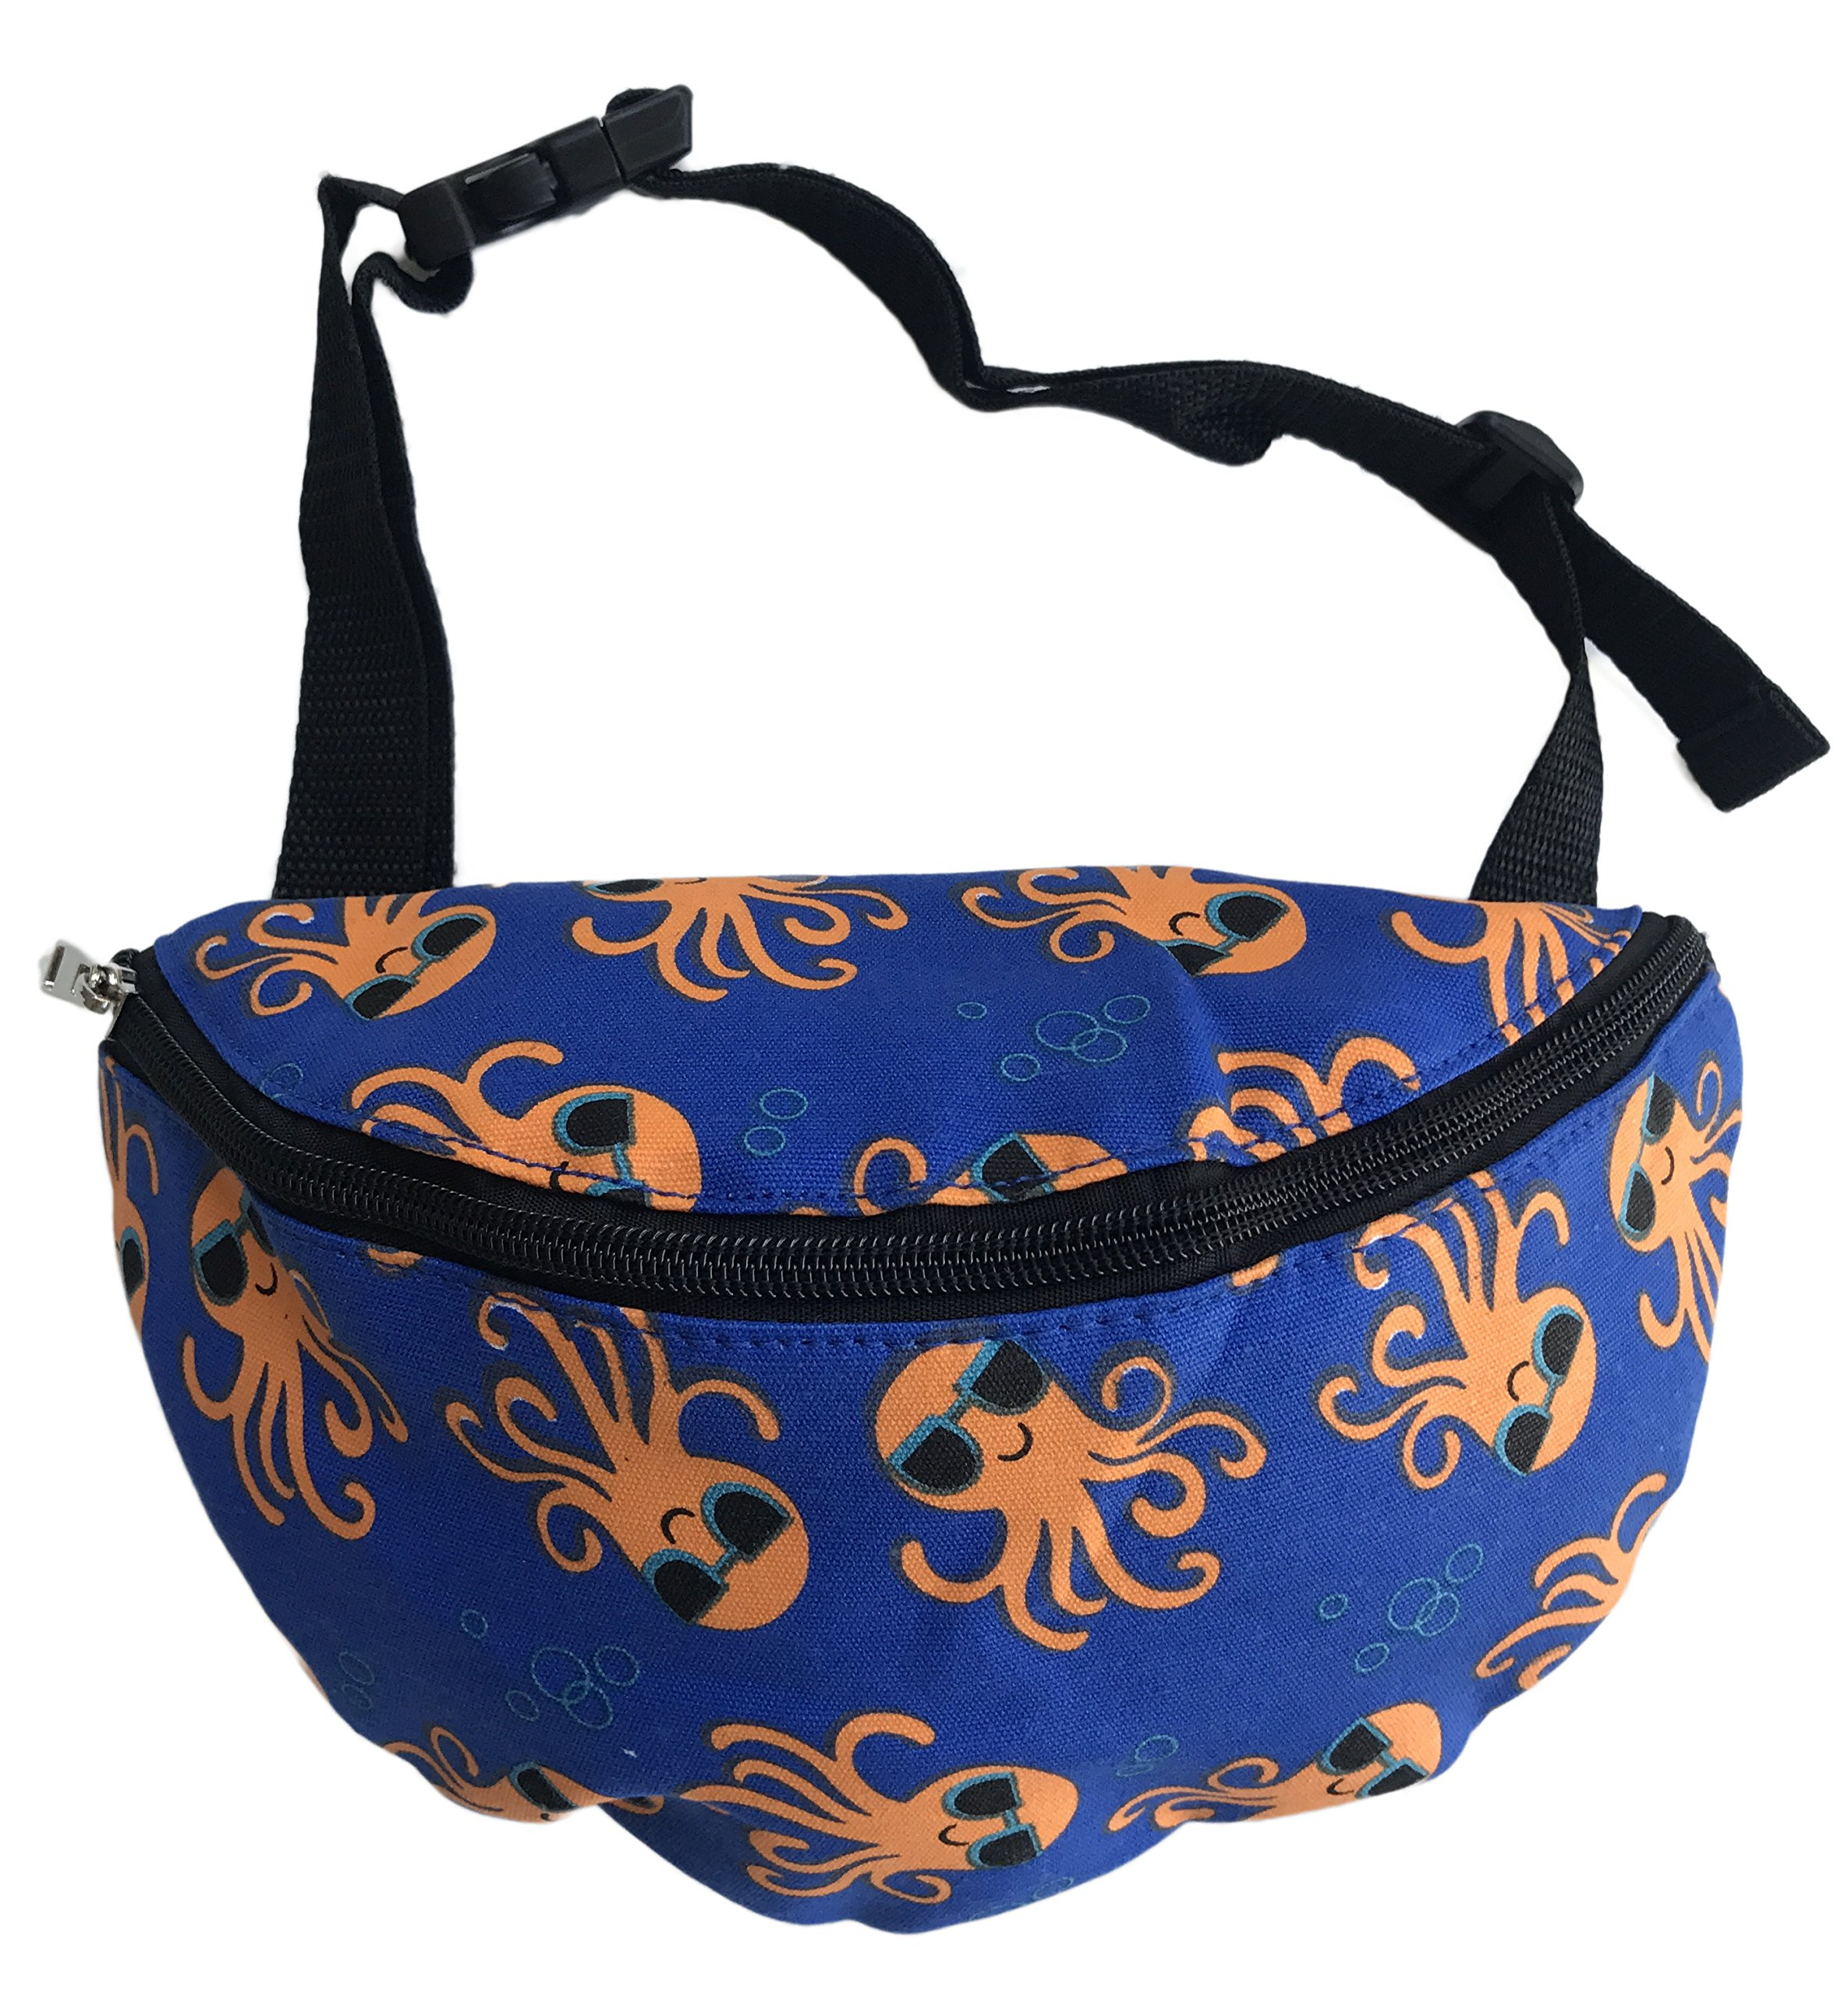 Orange Octopus in Sunglasses on Blue Waist Fanny Pack